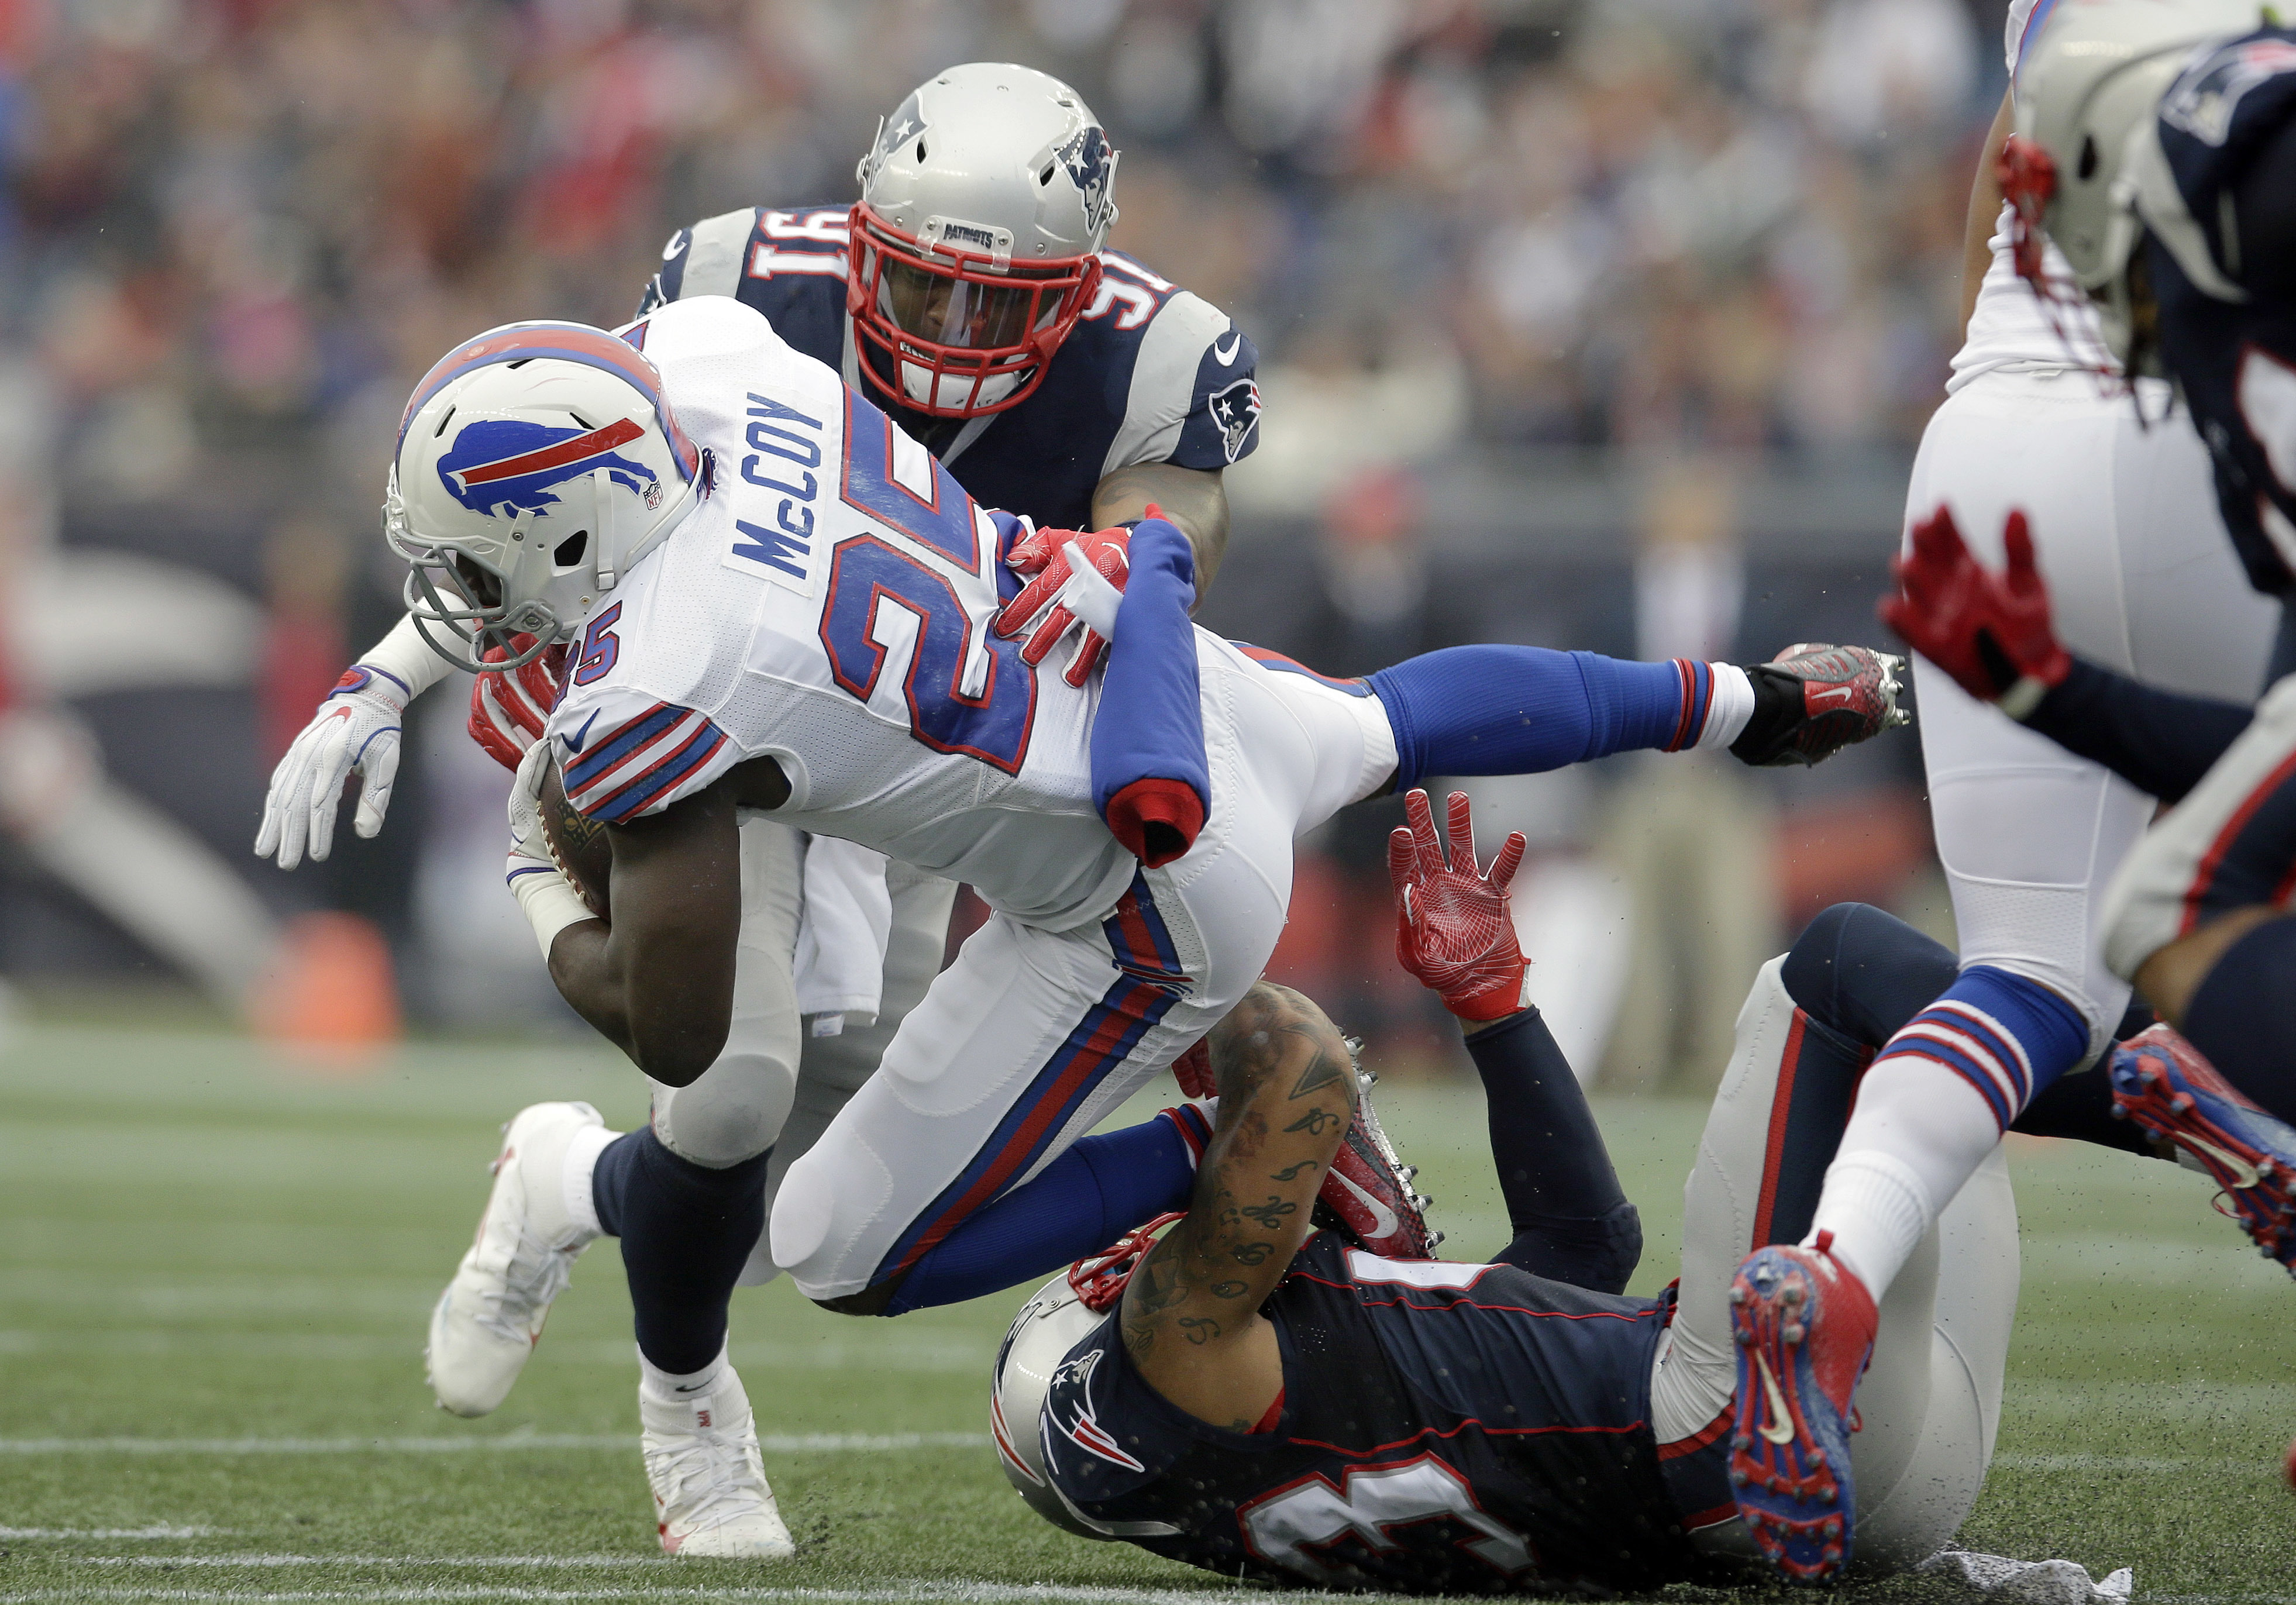 New England Patriots linebacker Jamie Collins (91) and safety Patrick Chung, below, tackle Buffalo Bills running back LeSean McCoy (25) during the first half of an NFL football game Sunday, Oct. 2, 2016, in Foxborough, Mass. (AP Photo/Steven Senne)